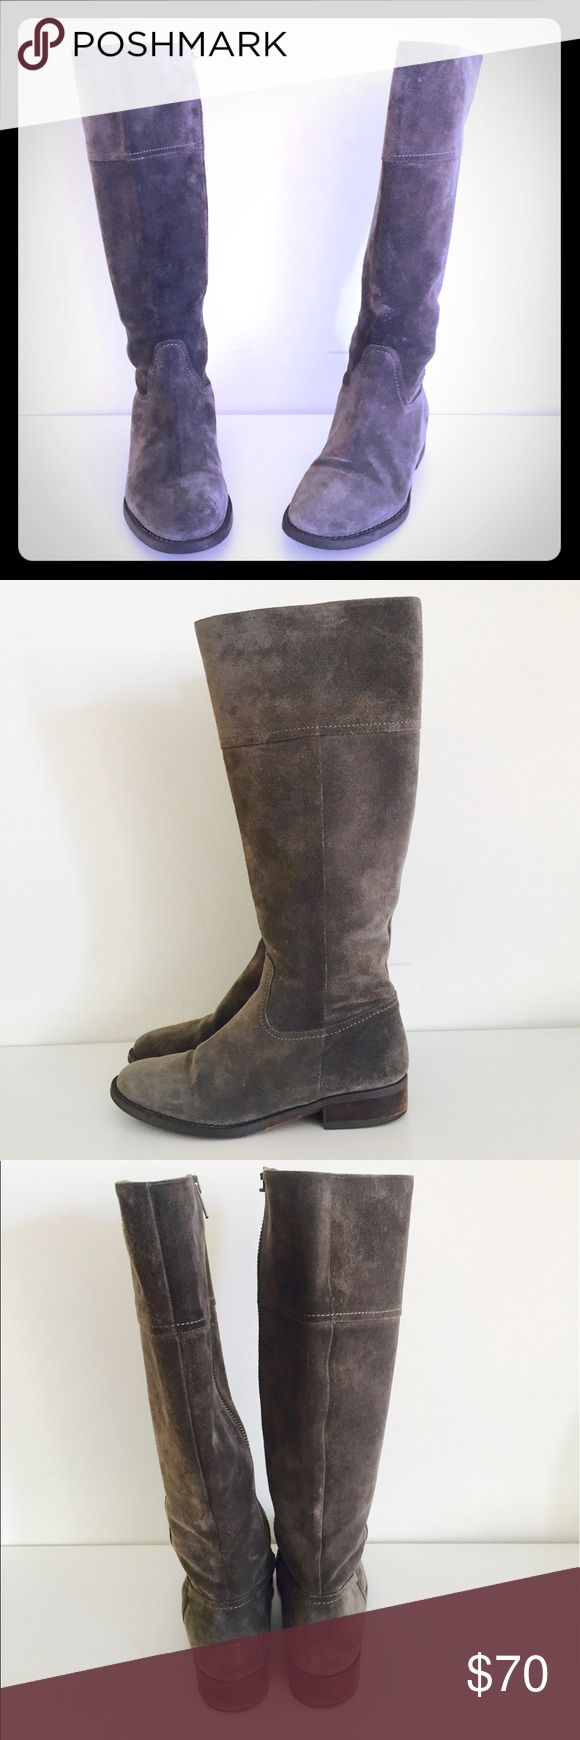 J Crew Boots Gray Suede Leather 7 Darling pair of gray Suede leather boots by J Crew.  Size 7   Please see images, one of the zipper pulls has broken off, they still zip up and down, just missing the pull. Priced accordingly J. Crew Shoes Heeled Boots